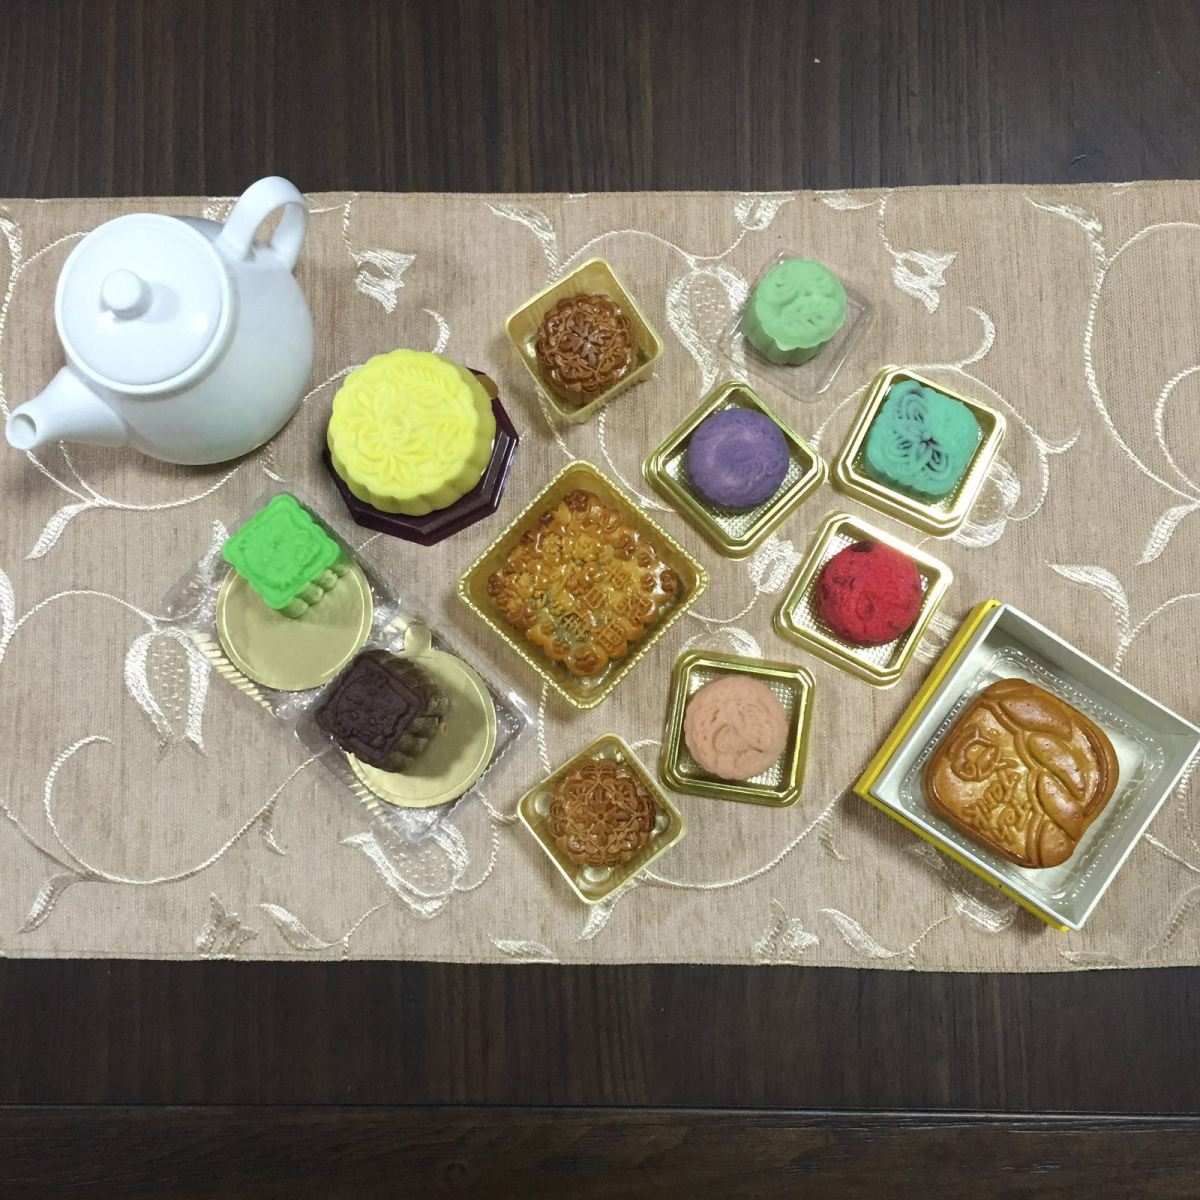 5 Places to Pick Up Halal Mooncakes in Singapore